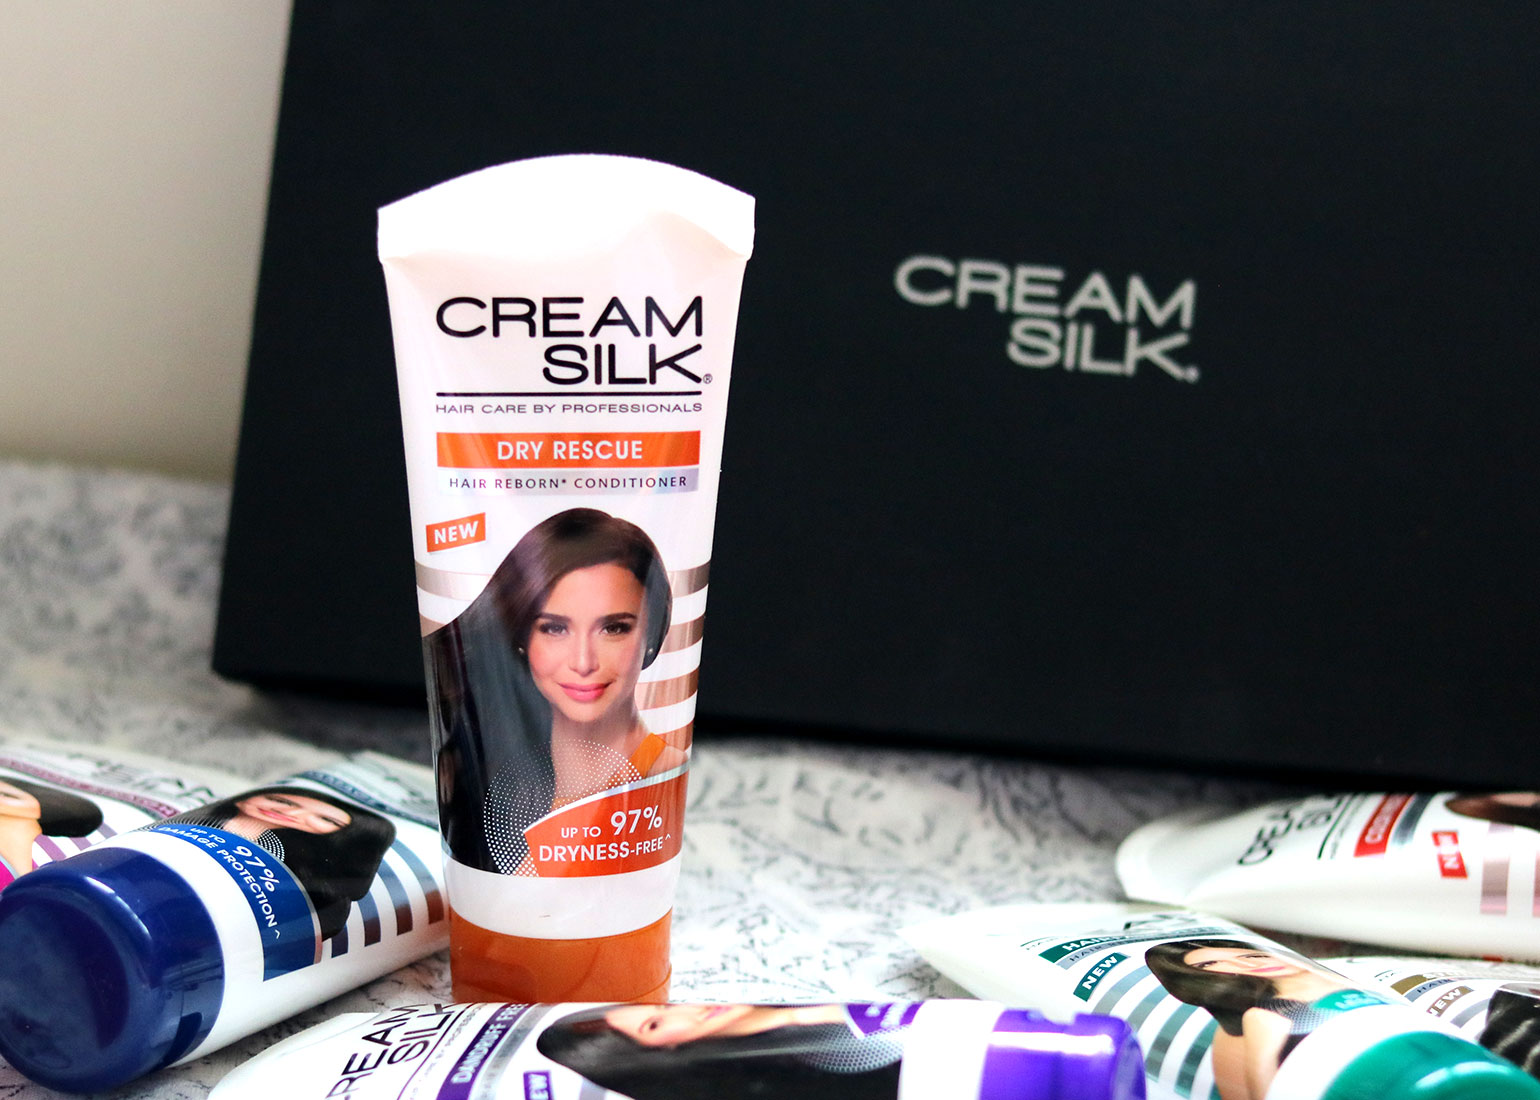 6 Cream Silk Power To Transform Customized Solutions Review Photos - Gen-zel She Sings Beauty